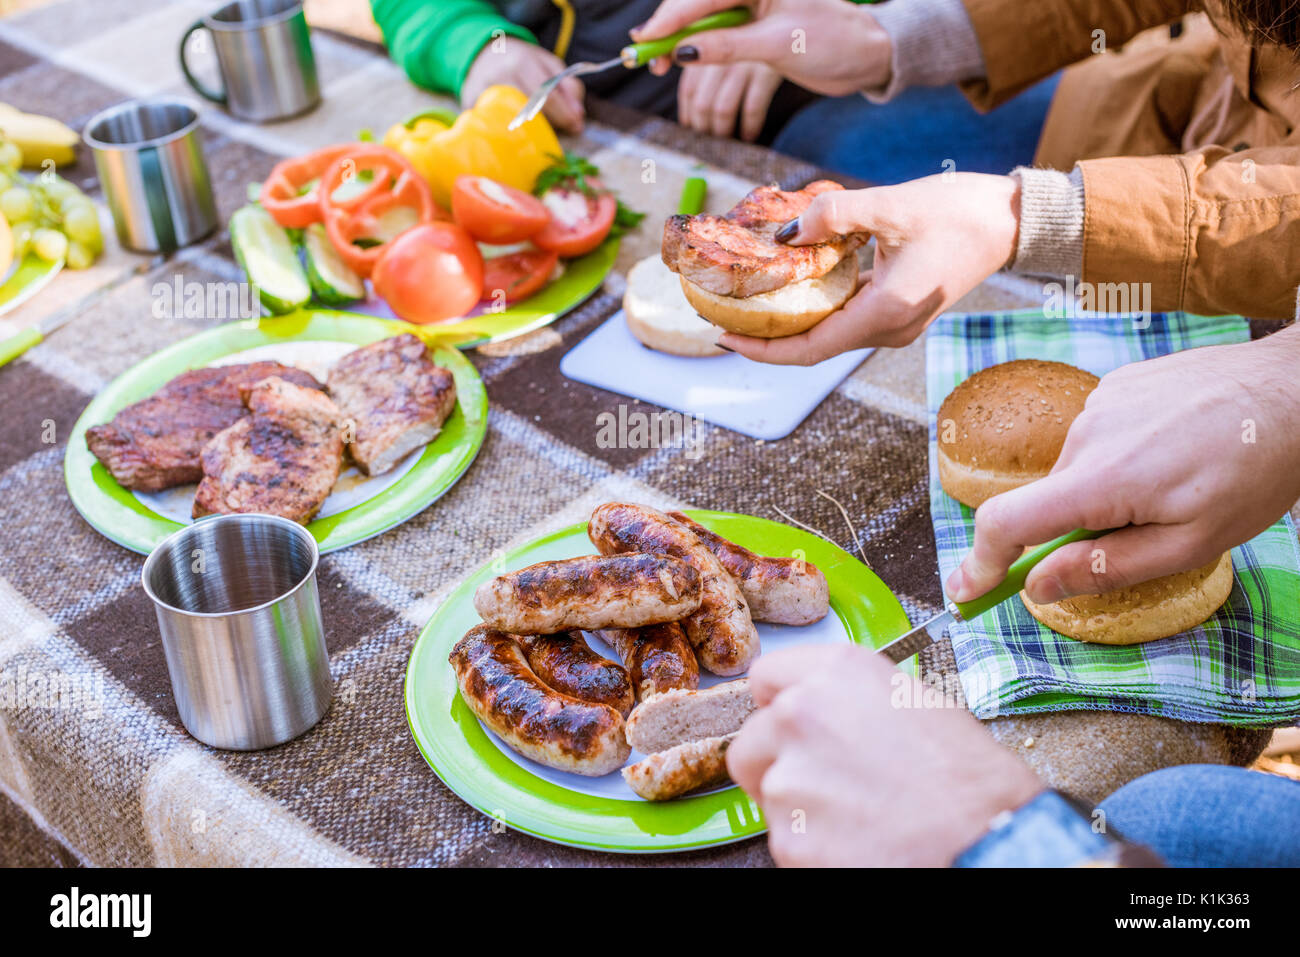 Close-up view of human hands and tasty food on table, family eating at picnic - Stock Image